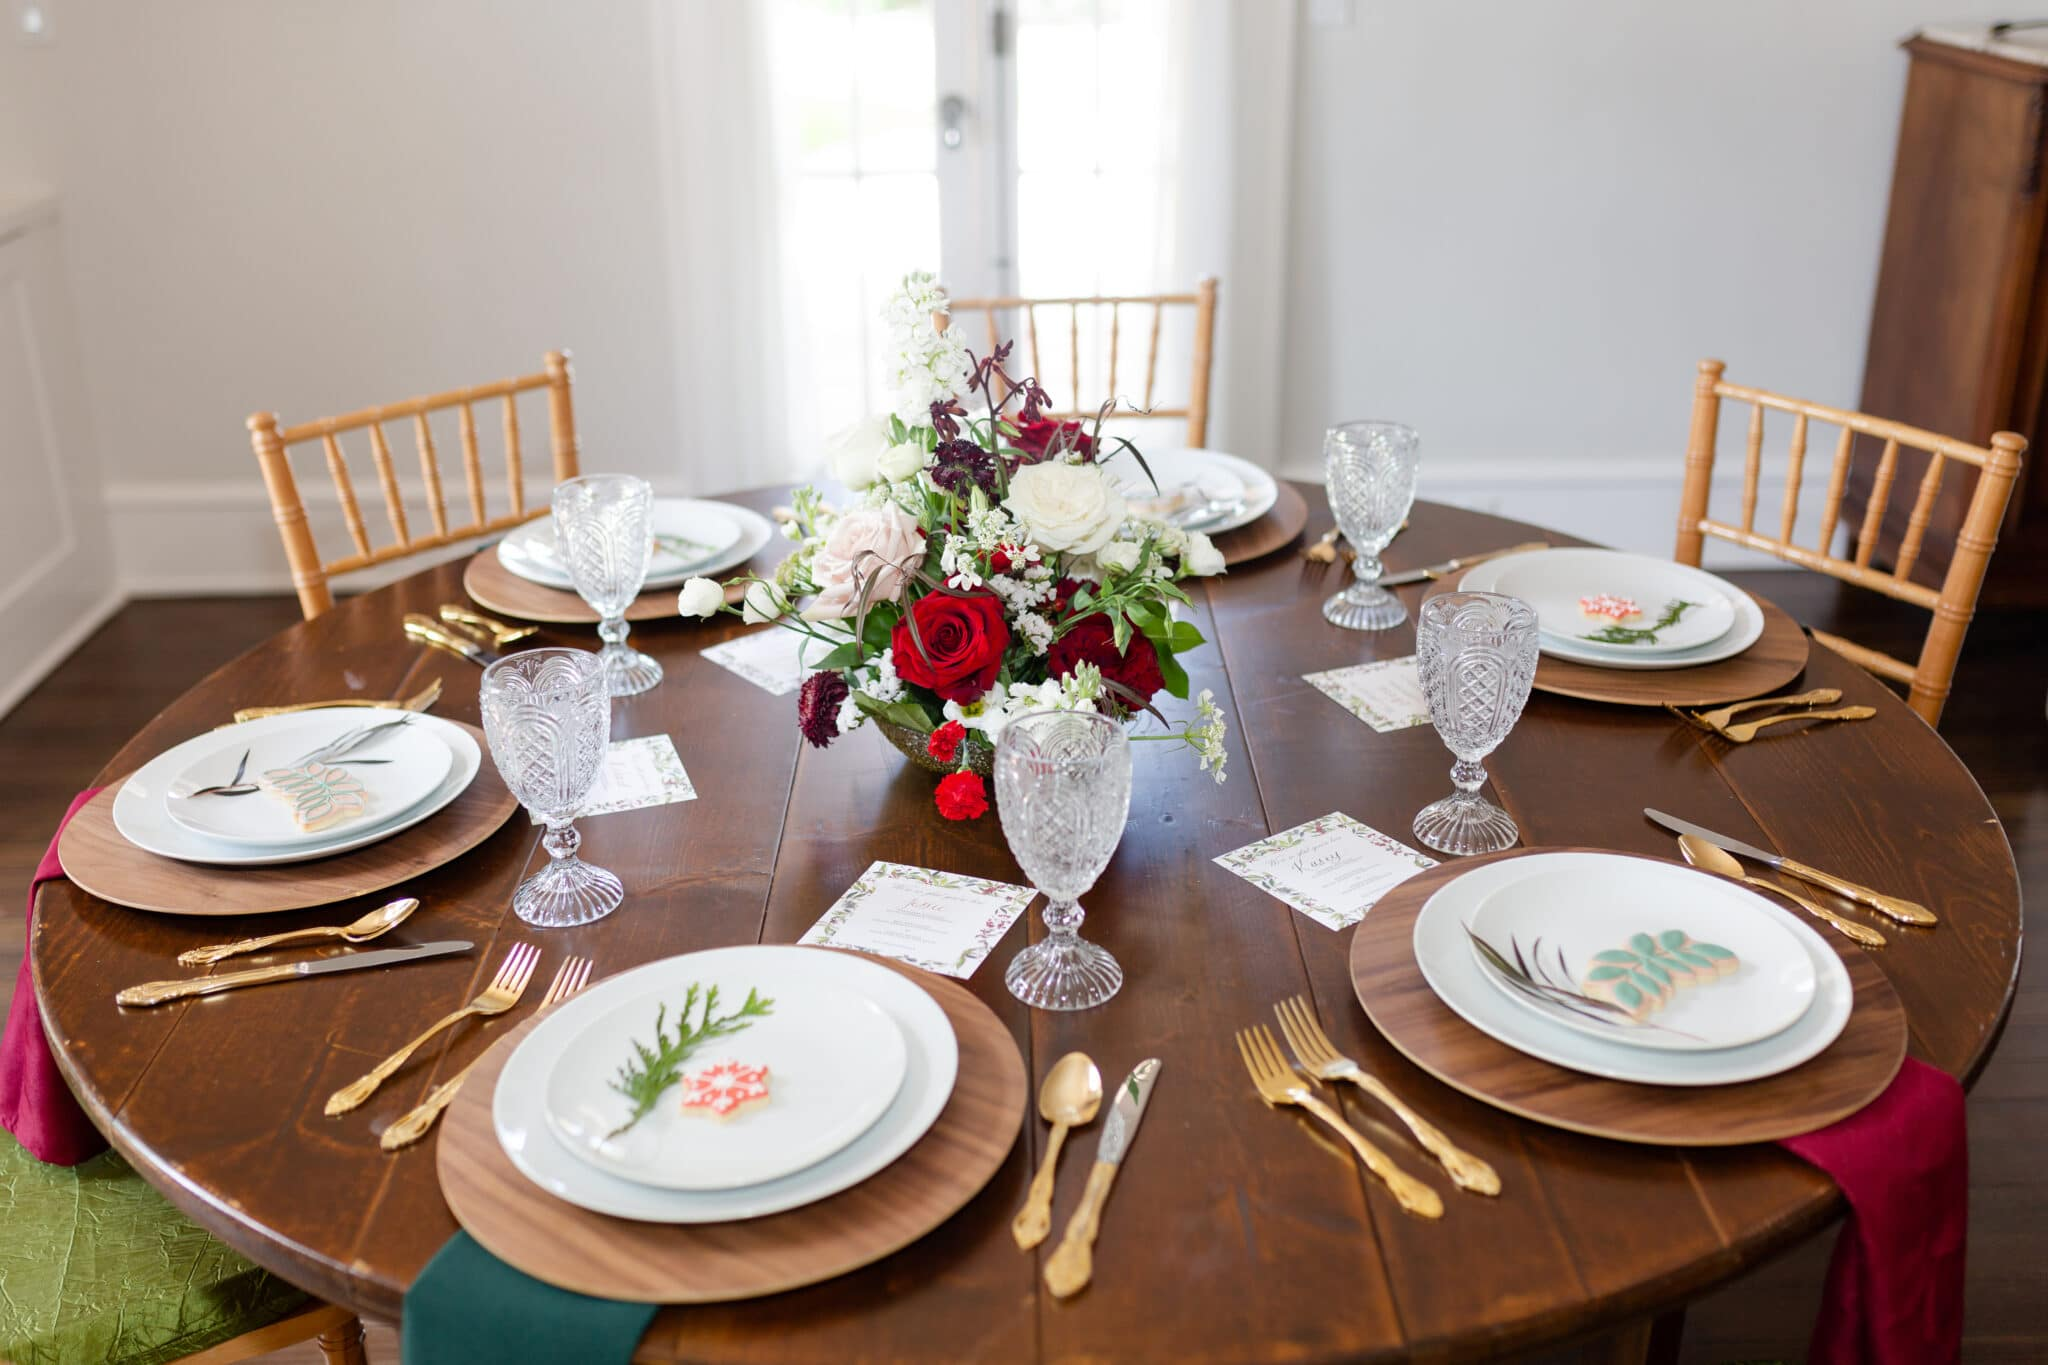 a large round table set for six people with Christmas themed wedding inspiration of red, green, white and gold accents